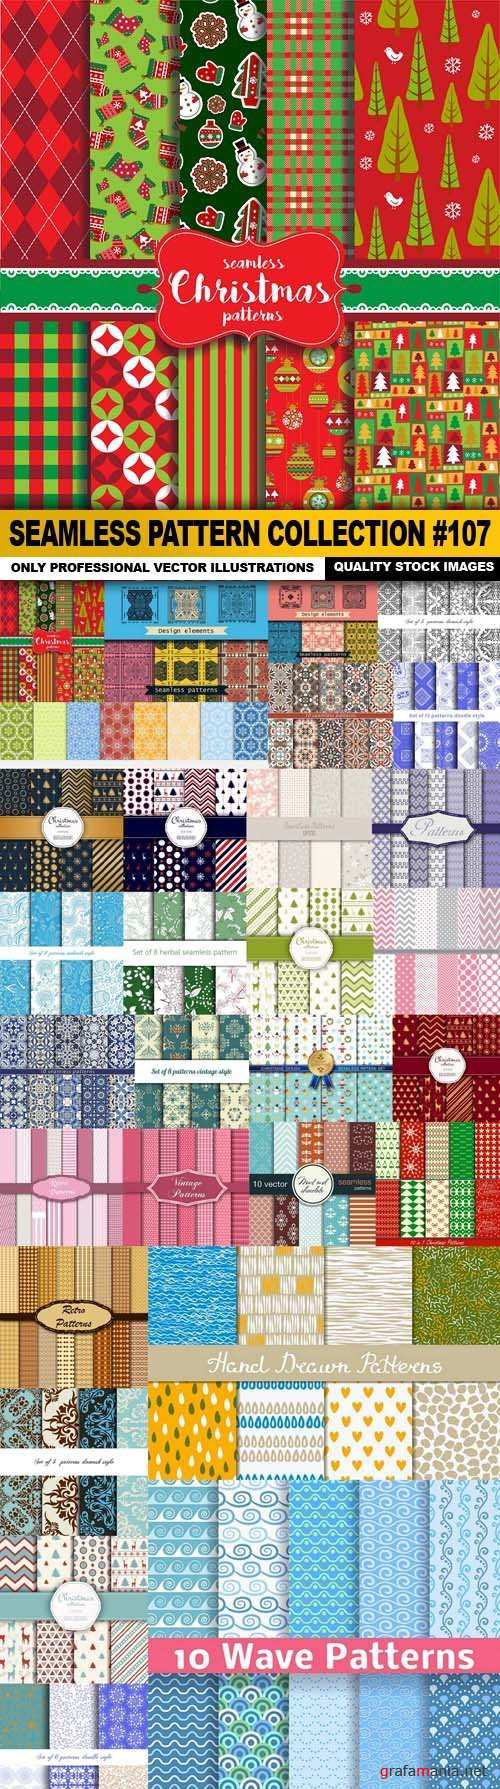 Seamless Pattern Collection 107 - 30 Vector